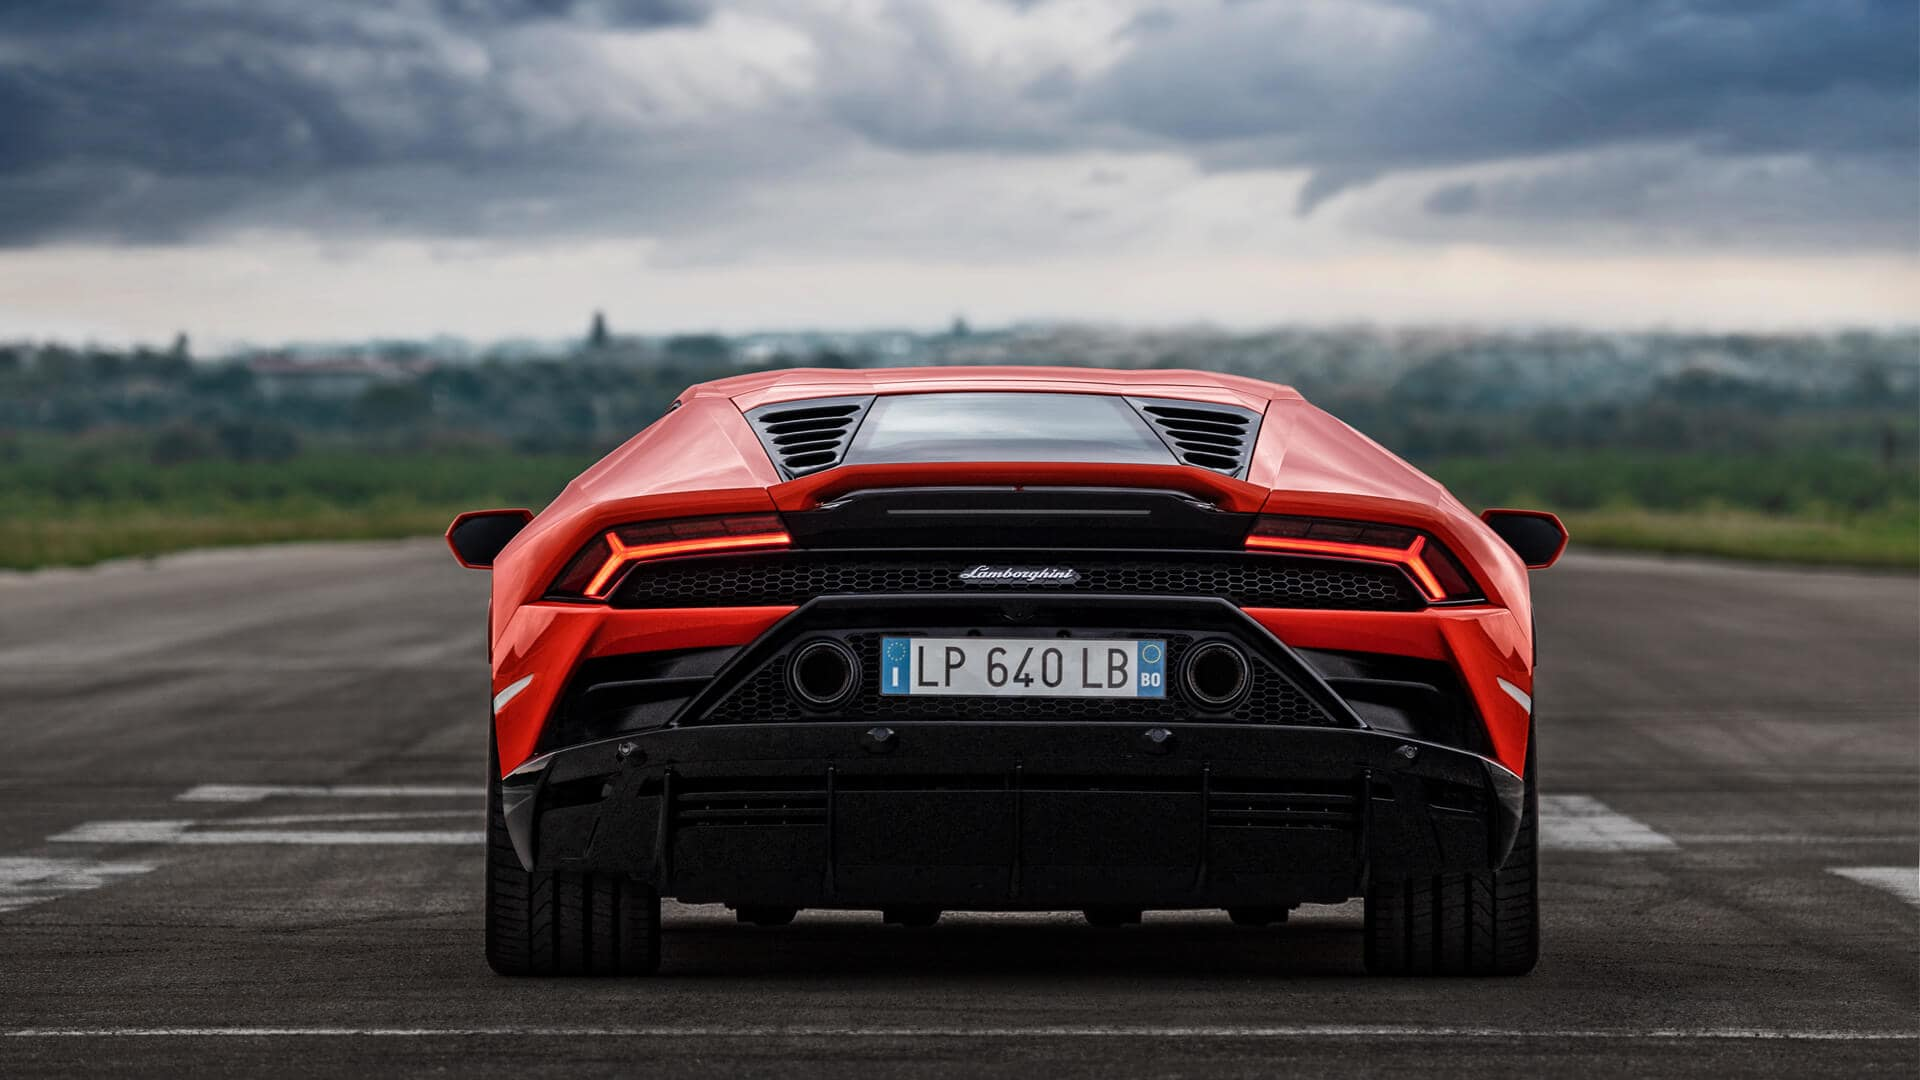 6 Must Know Facts About The 2019 Lamborghini Huracan Evo Top Speed